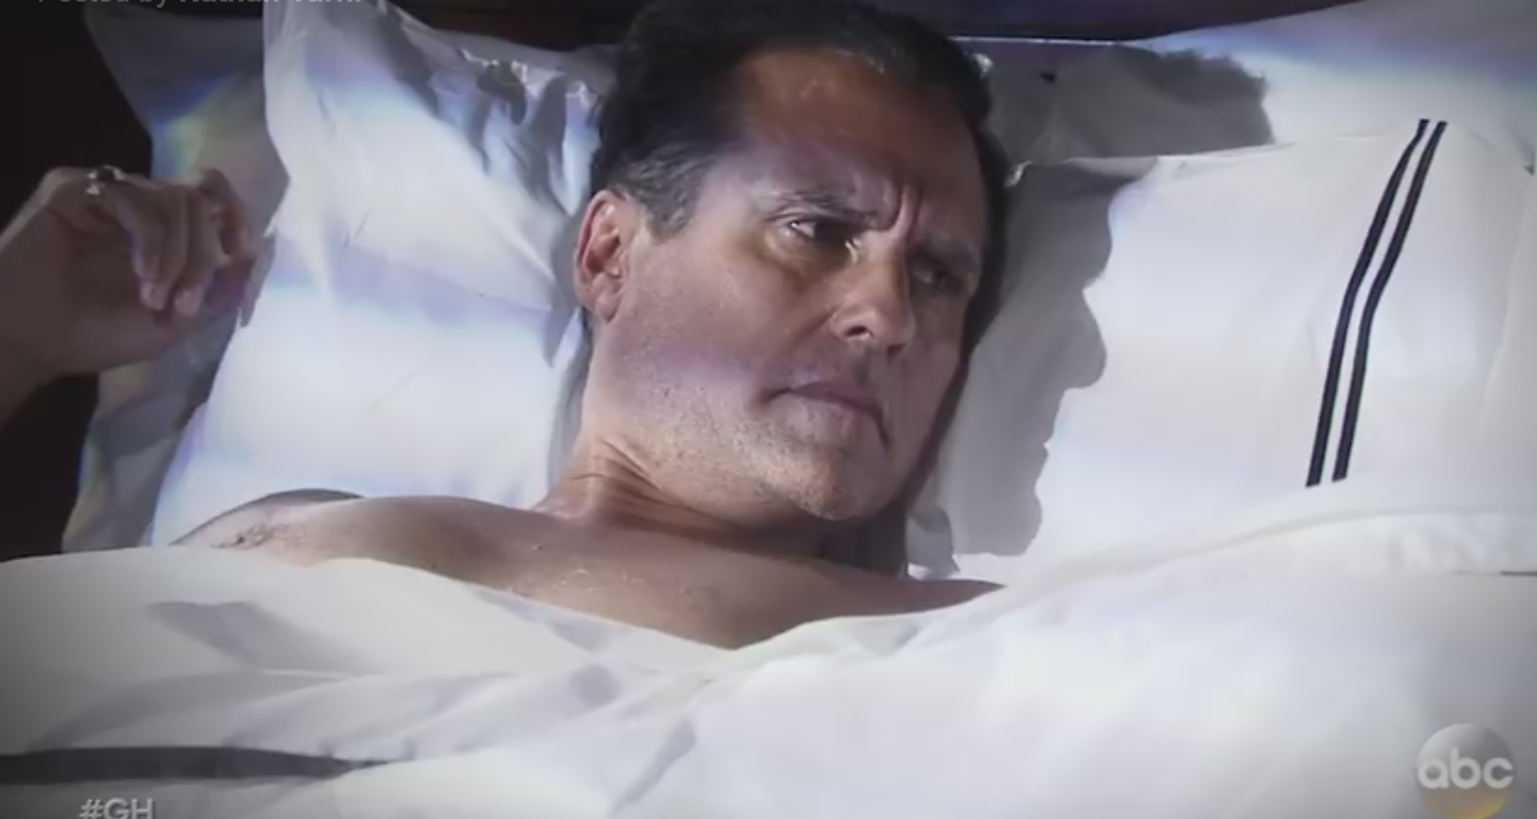 General Hospital Spoilers: Sonny Sleeps With Nelle - Sinister Deception Destroys Corinthos Clan